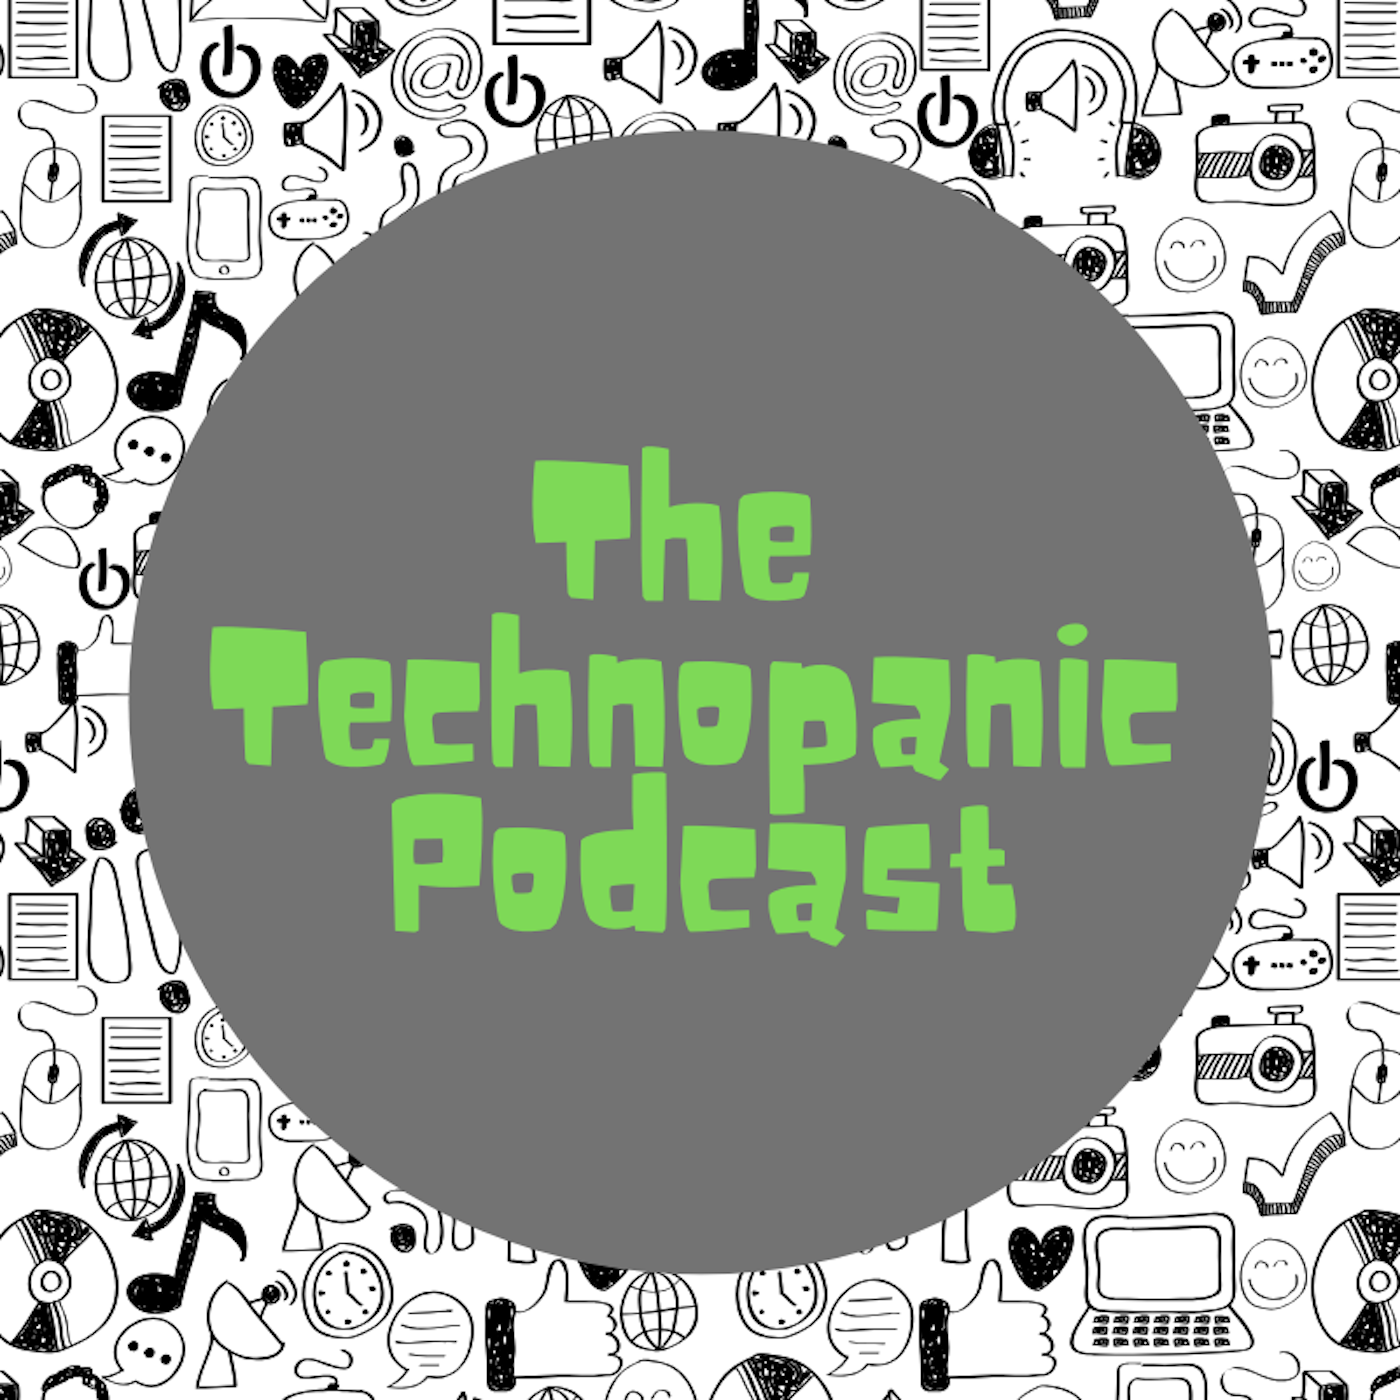 Technopanic Podcast: Living & learning in an age of screentime